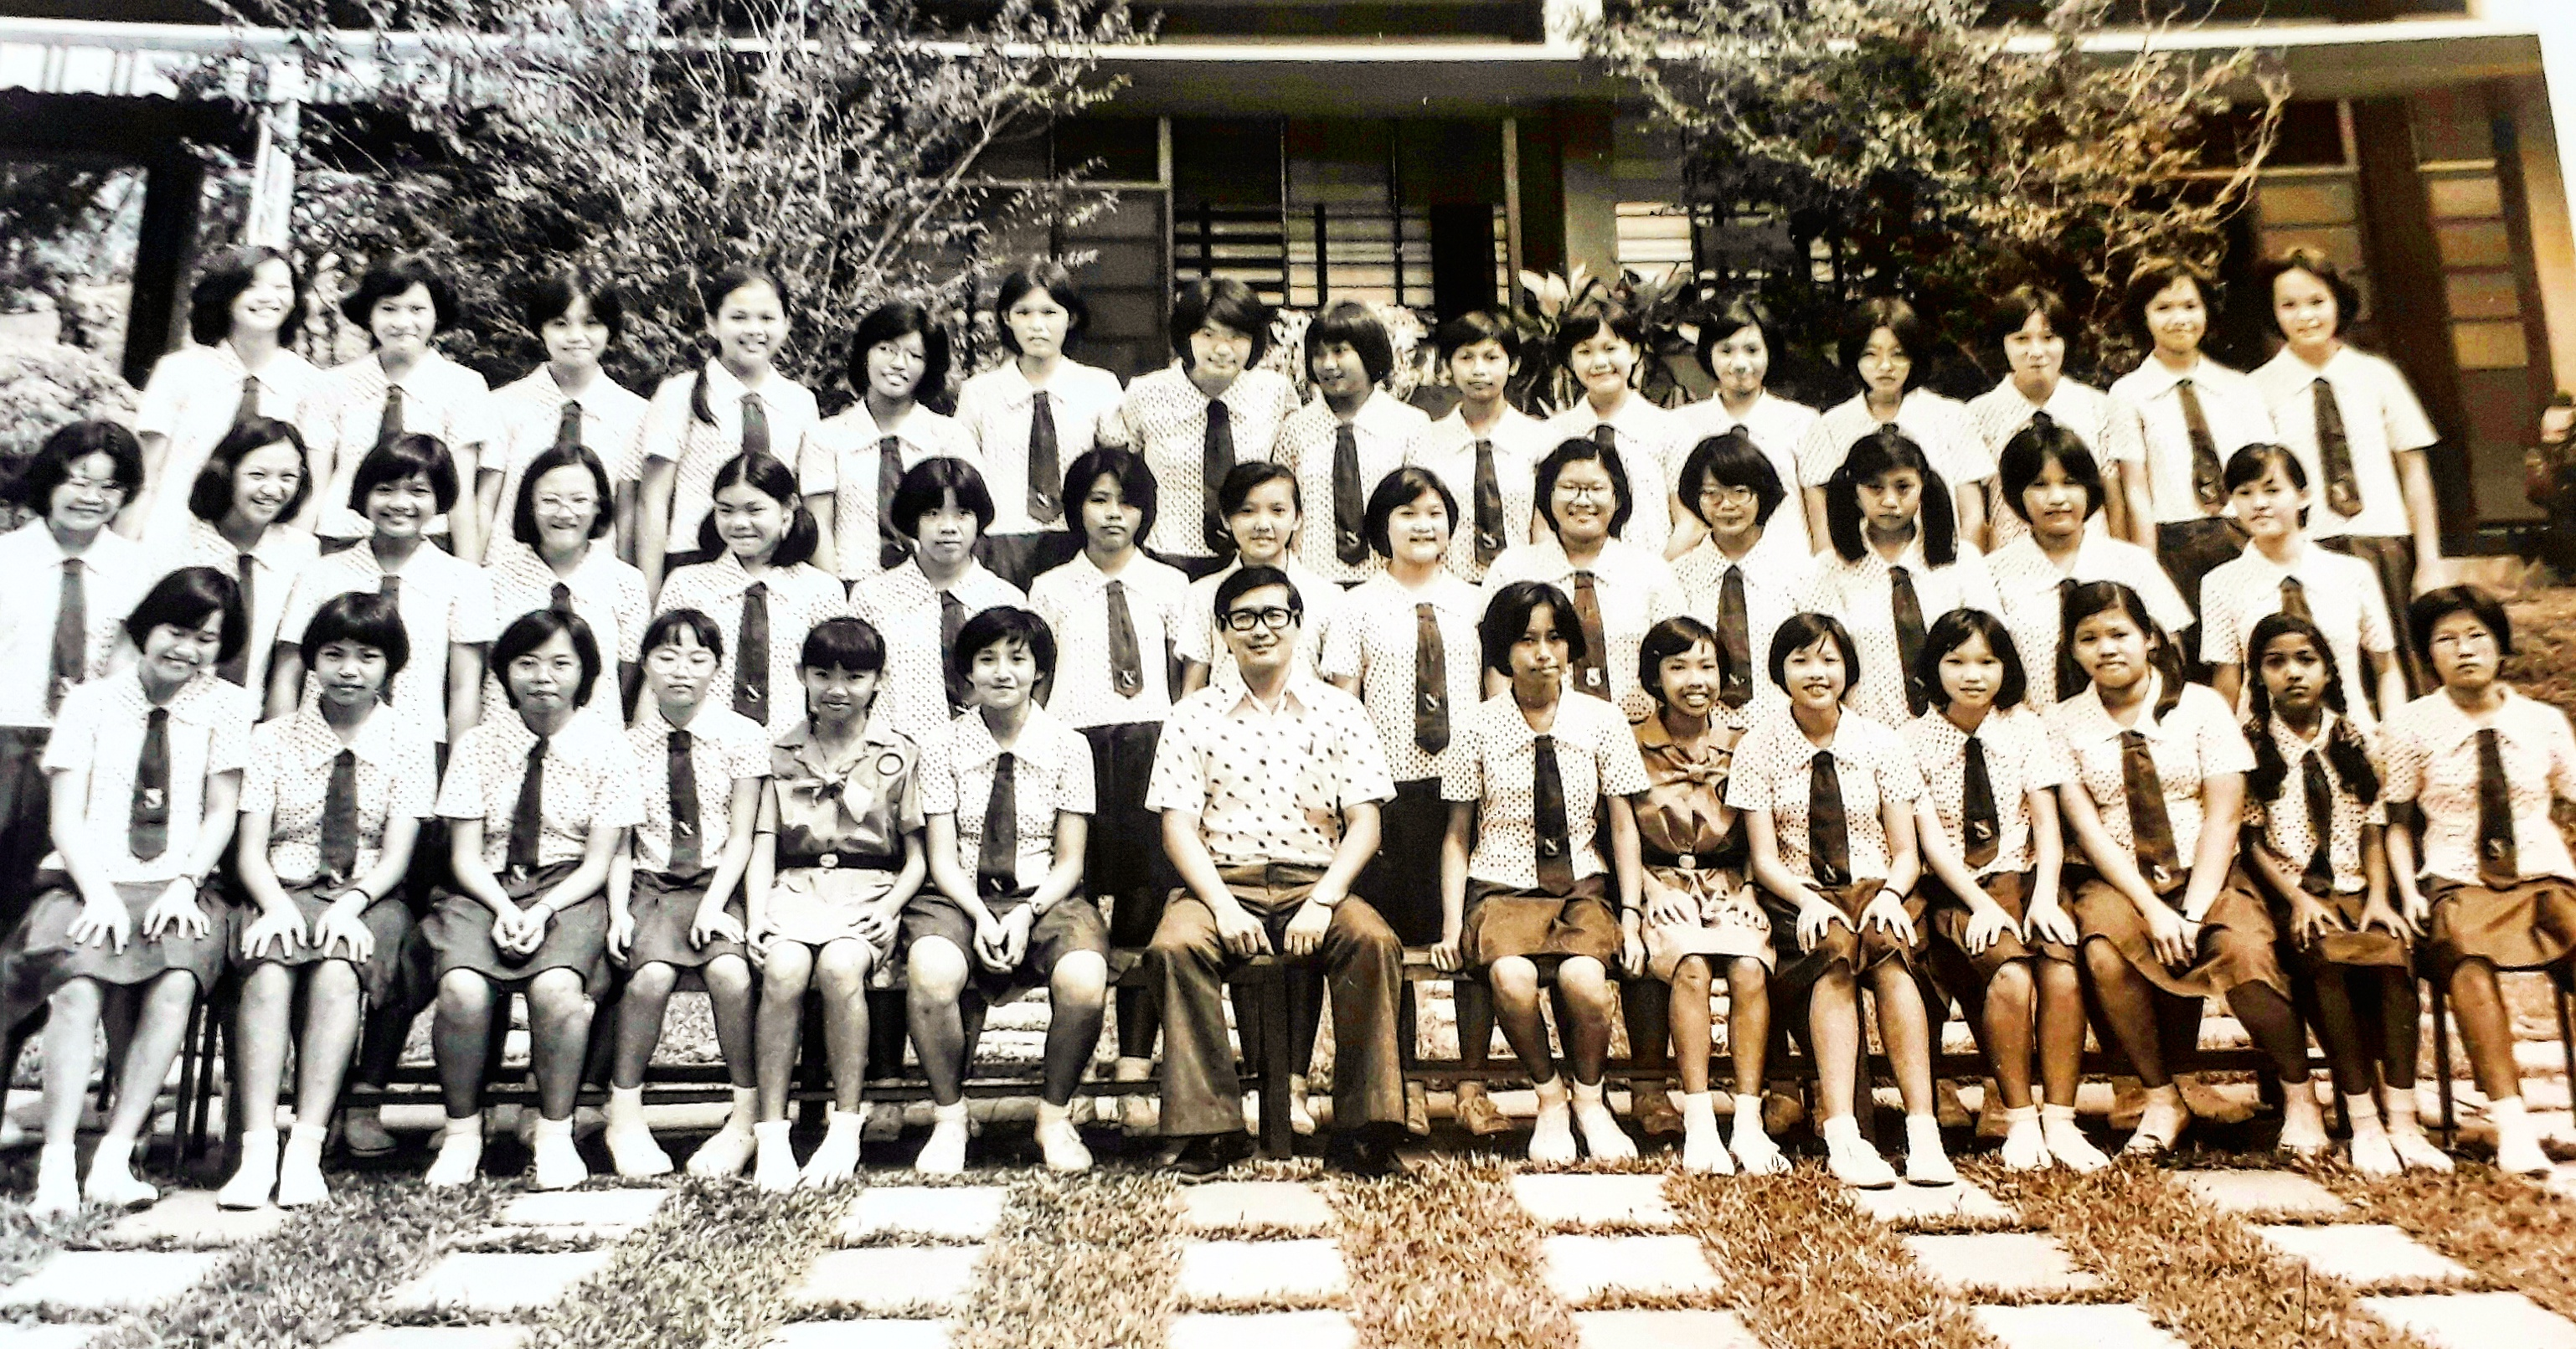 Photo 3 - Class Photo with Handsome Mr Chin.jpg